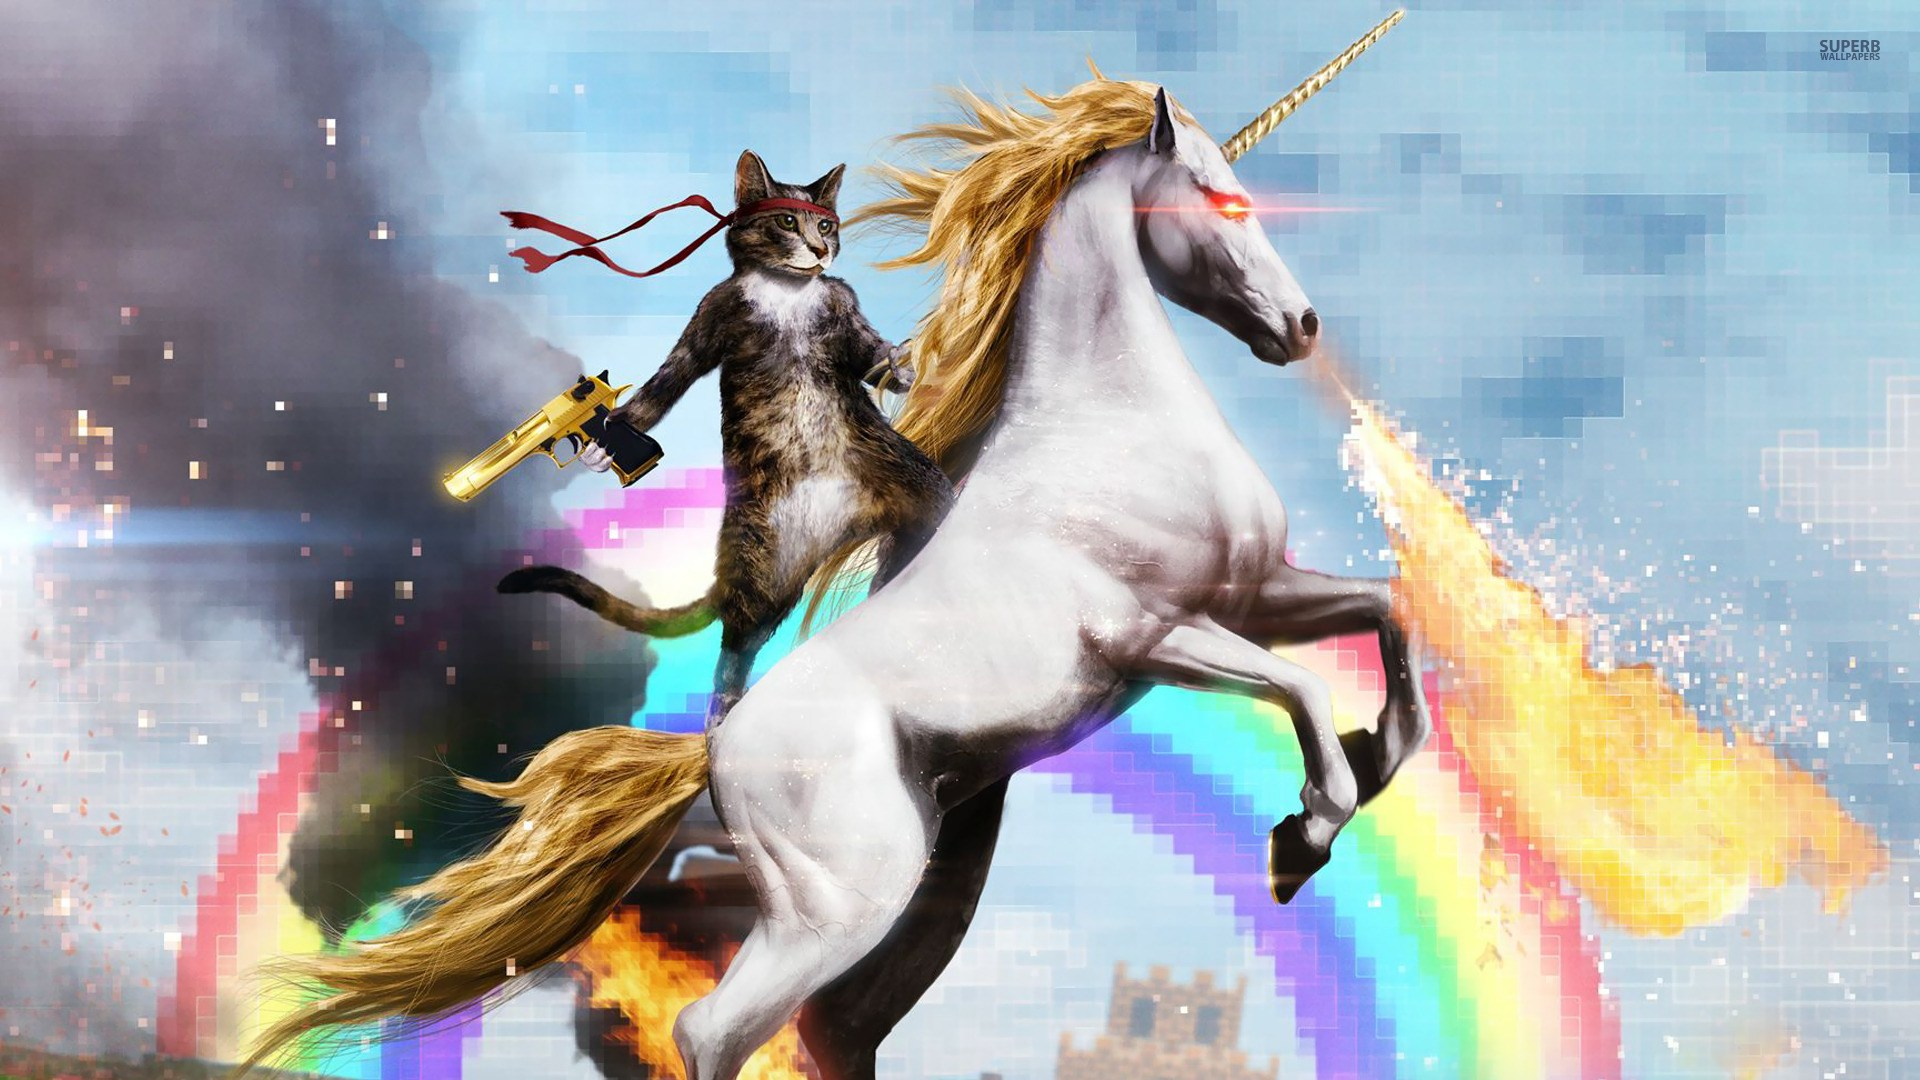 Cat Riding A Fire Breathing Unicorn Google Search Wallpaper Cat Riding A Unicorn 262444 Hd Wallpaper Backgrounds Download